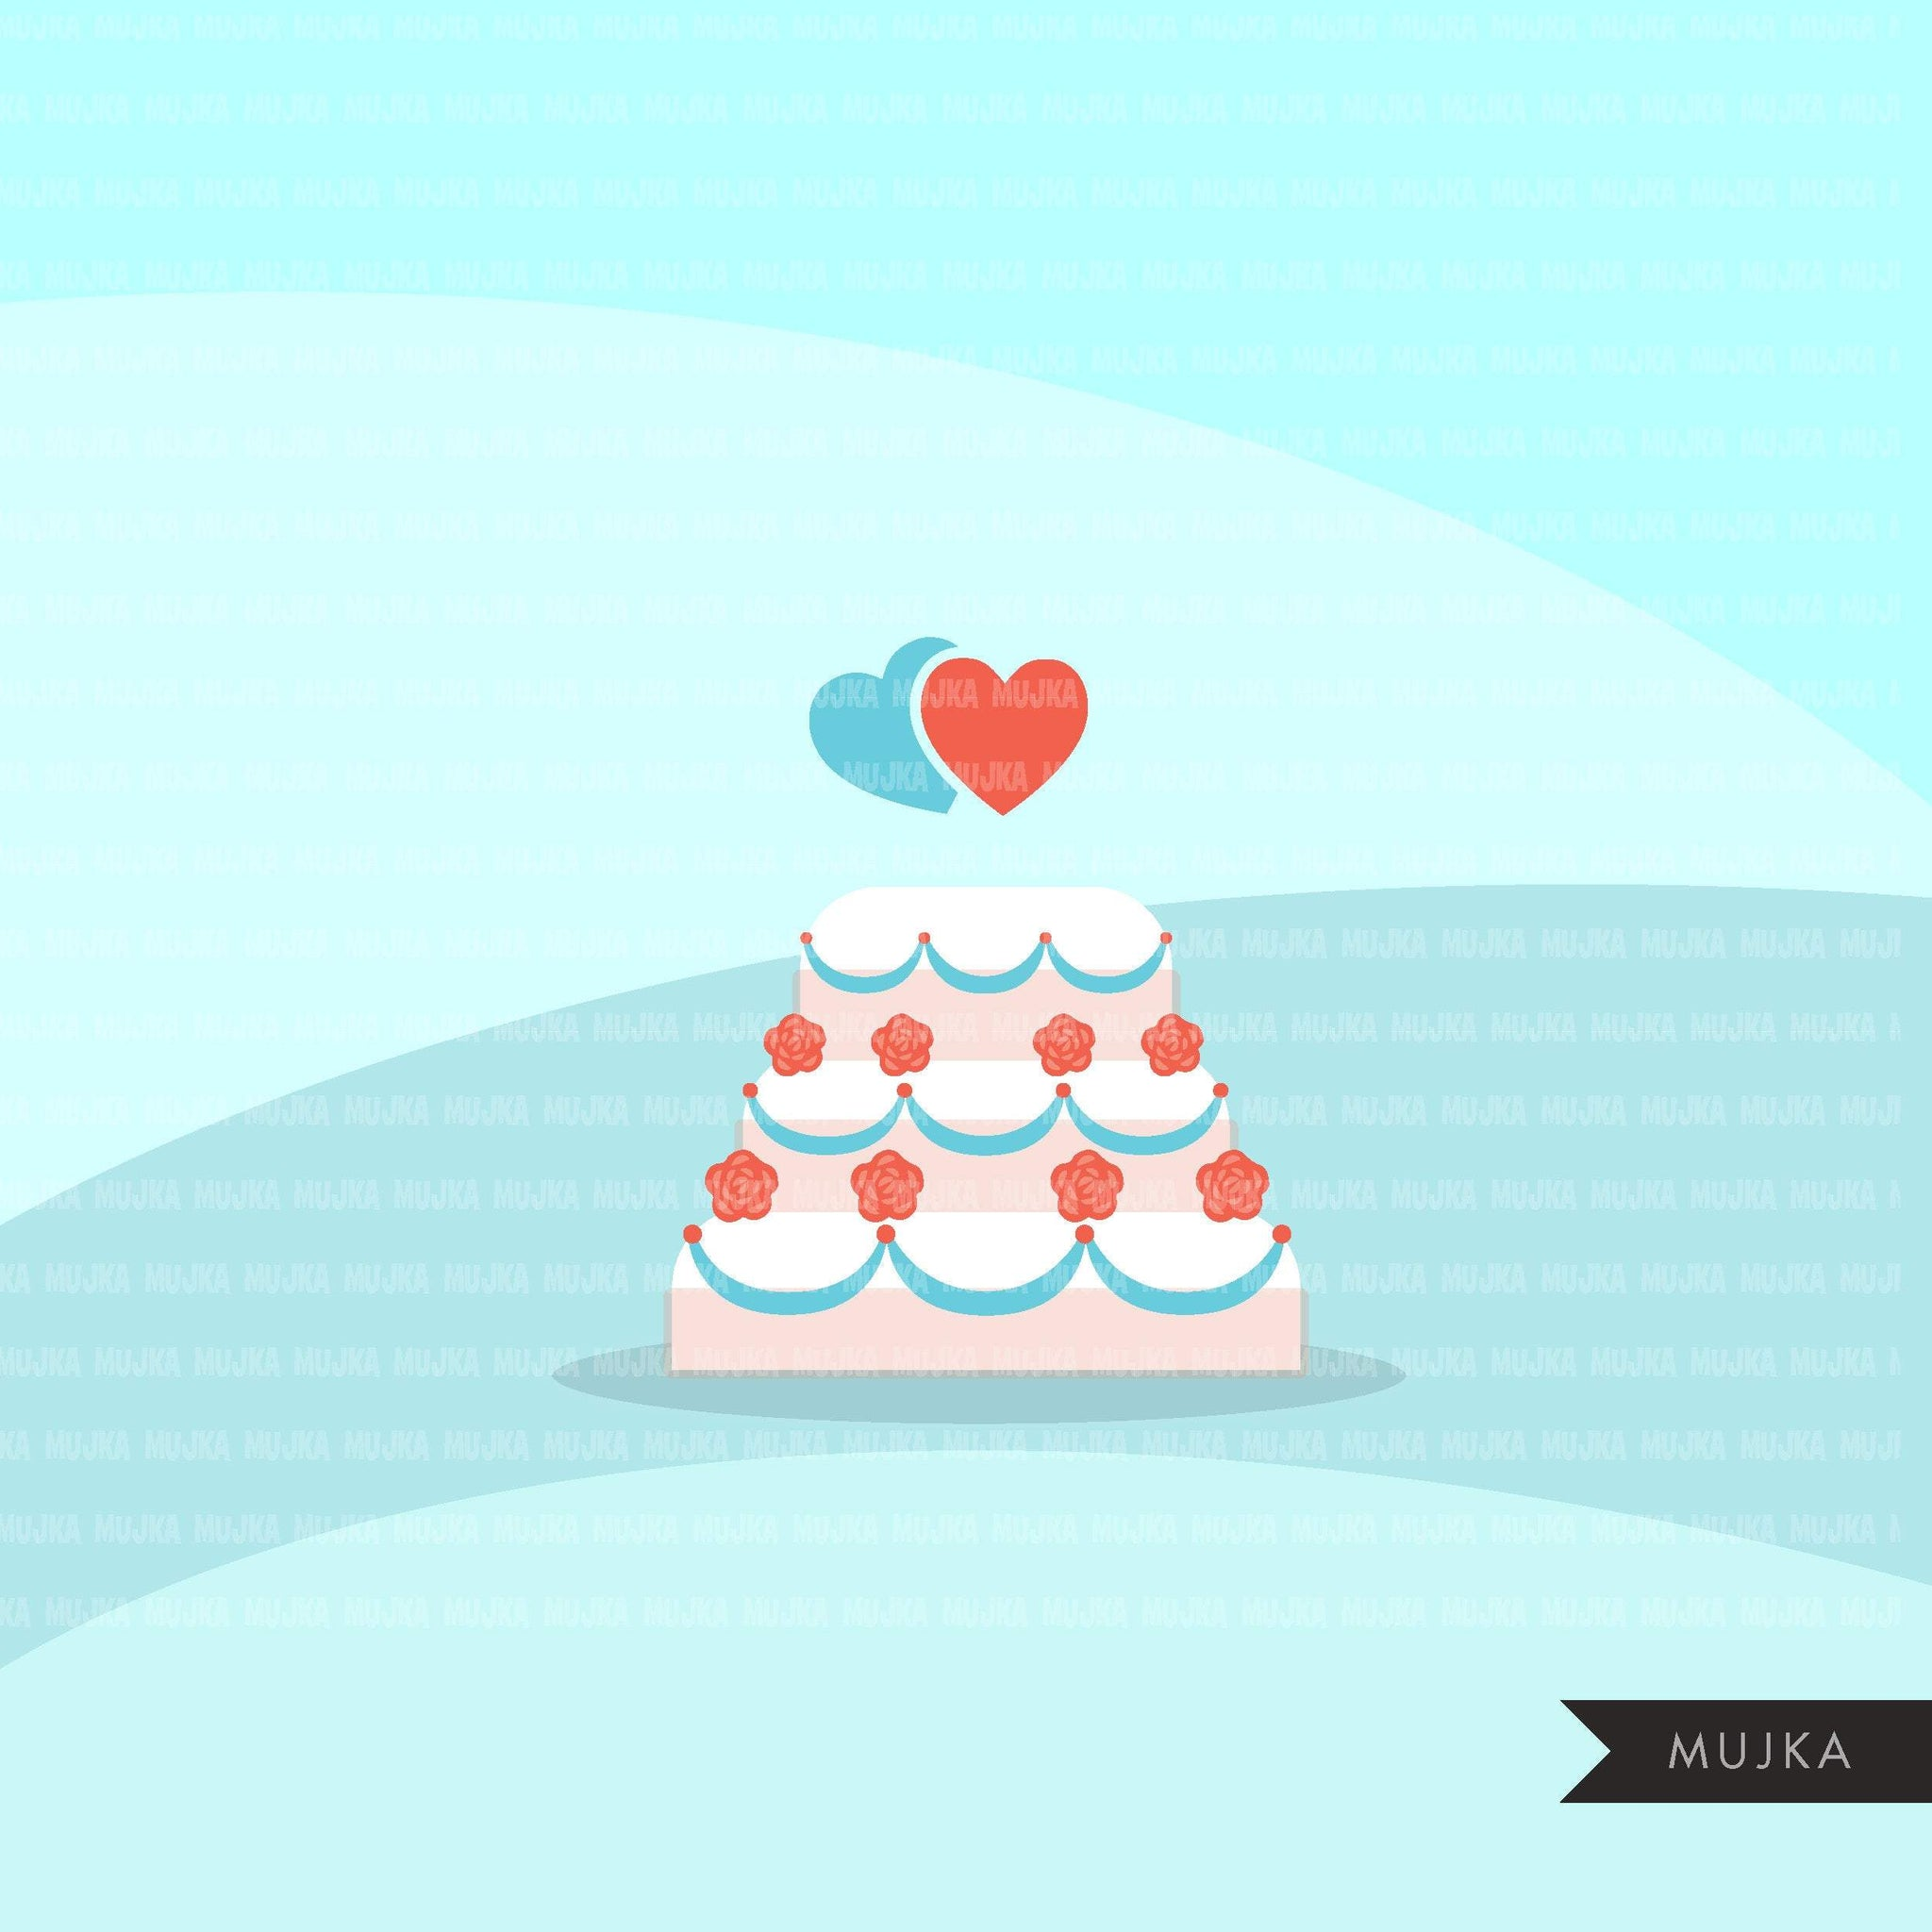 Gnomes wedding elements clipart,cake, rings, bouquet, balloons wedding graphics commercial use Png